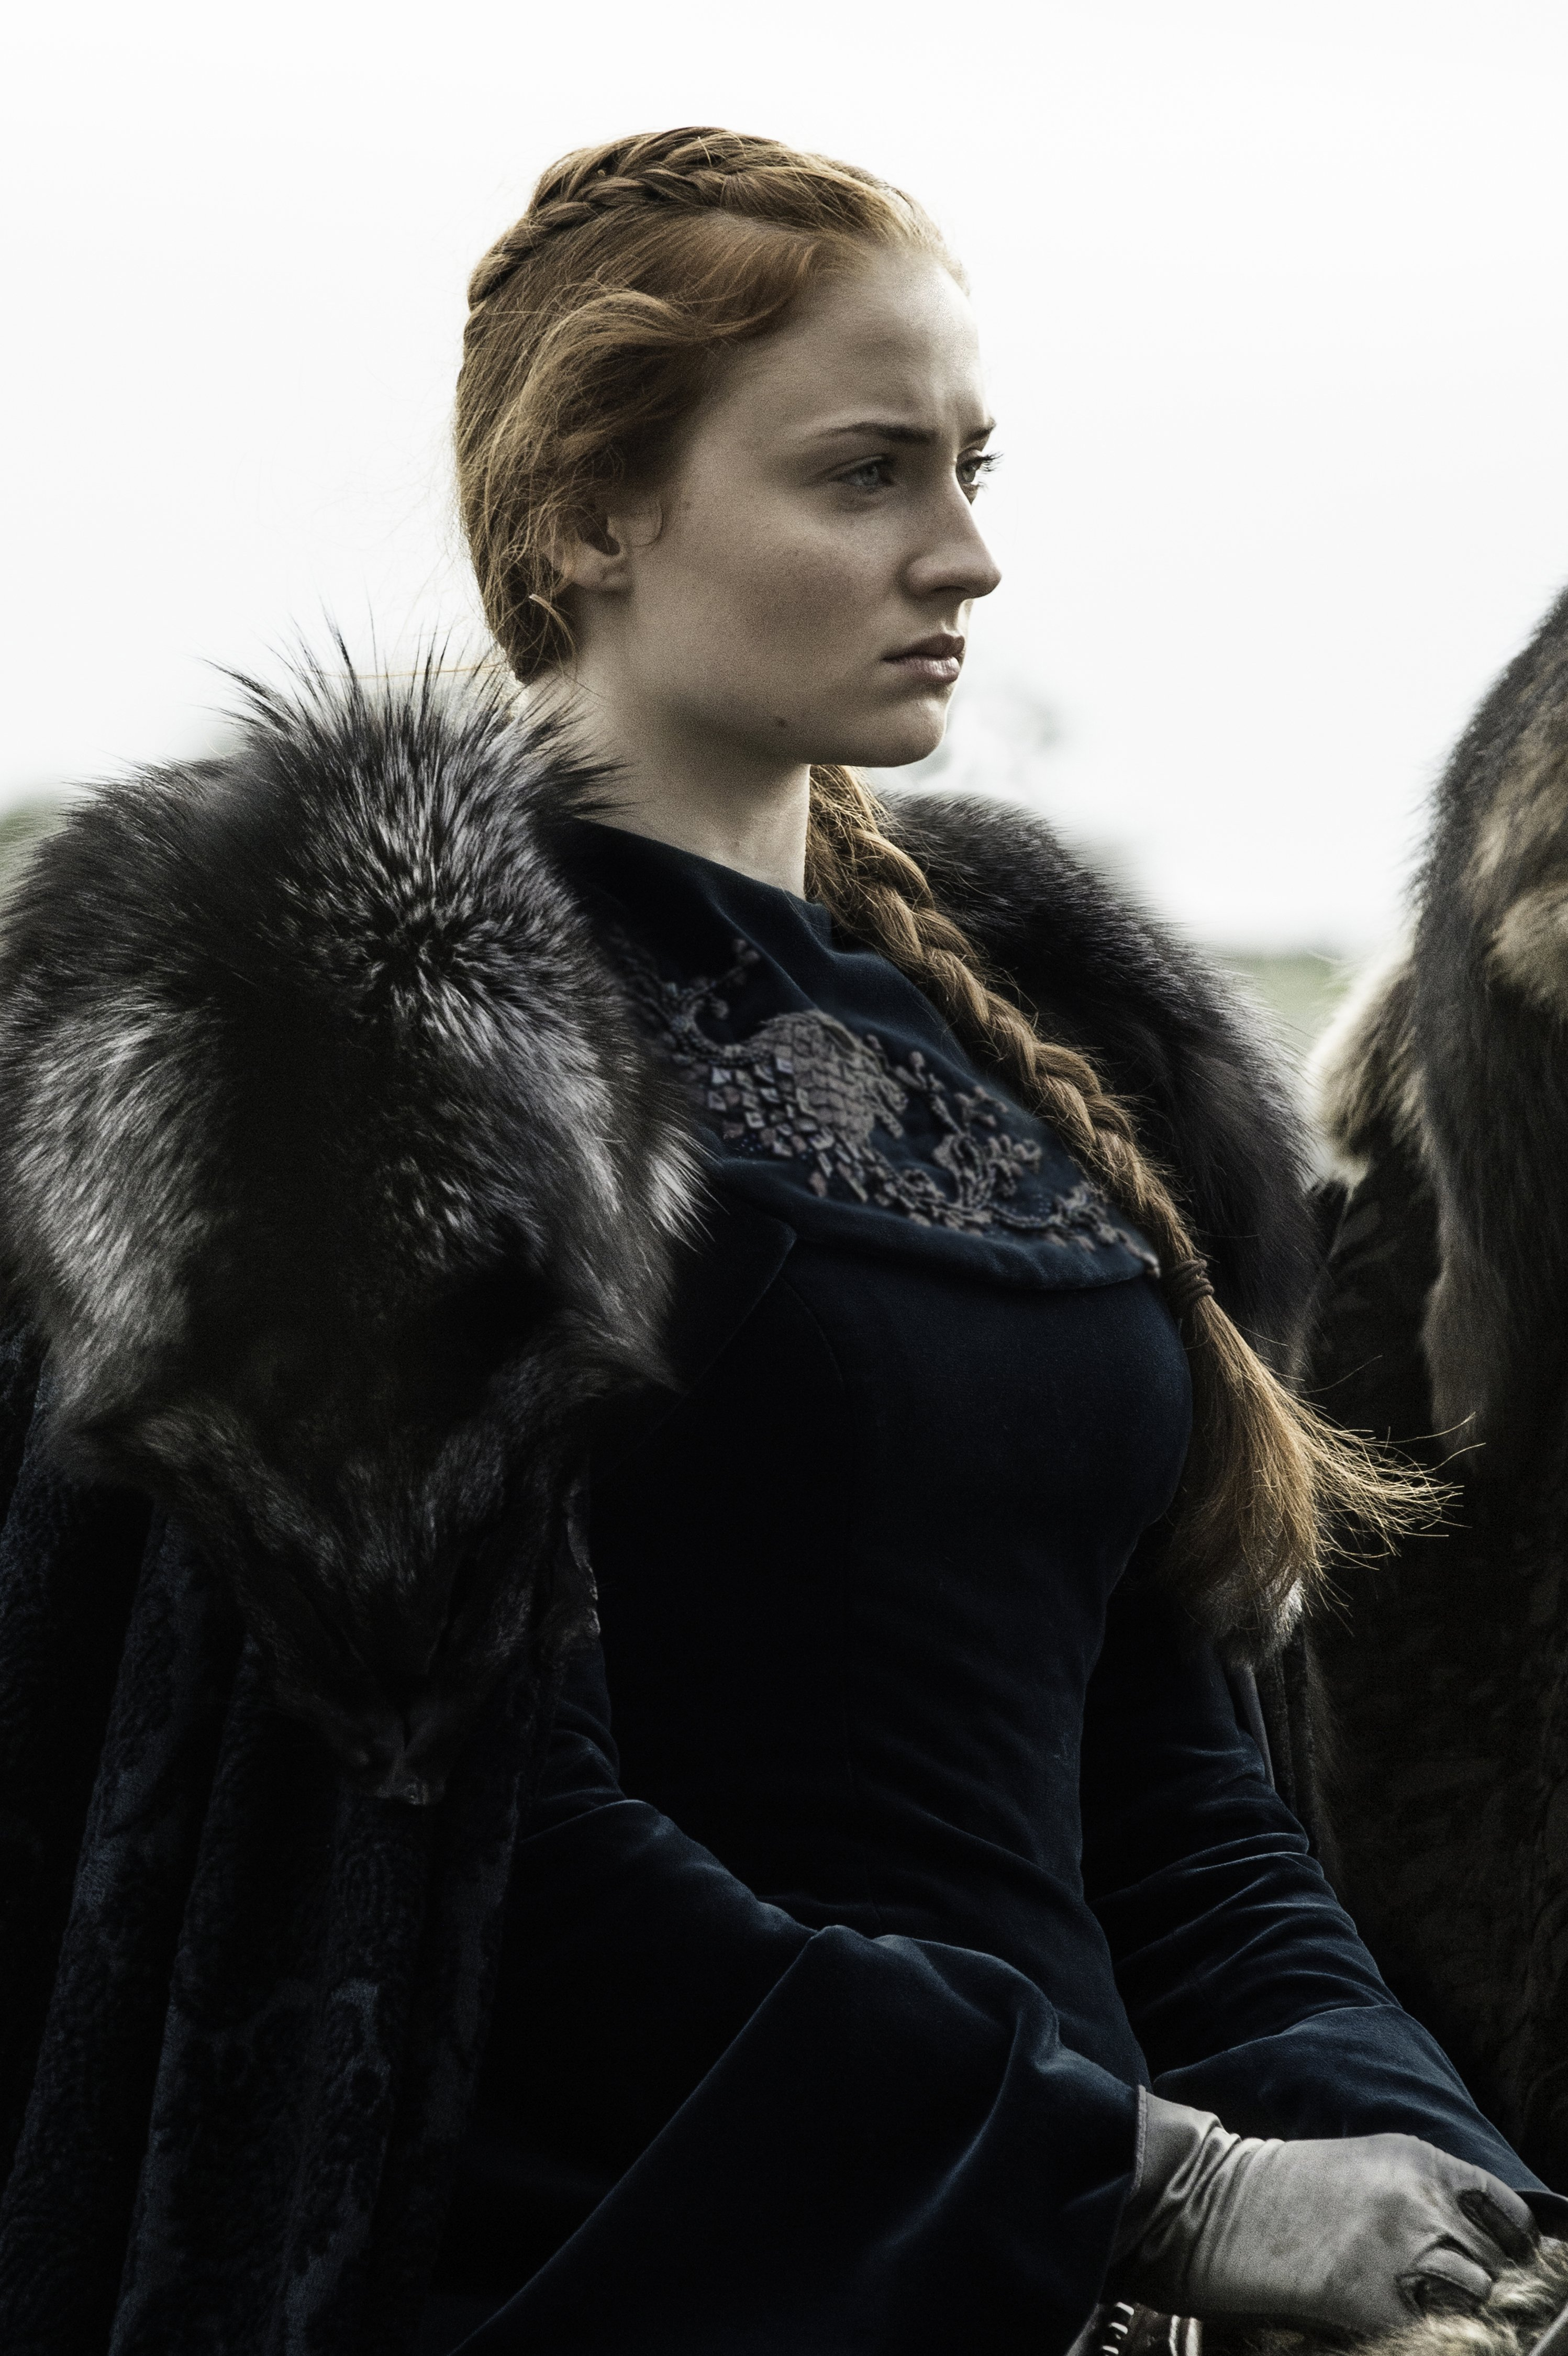 Sansa Stark Images HD Wallpaper And Background Photos